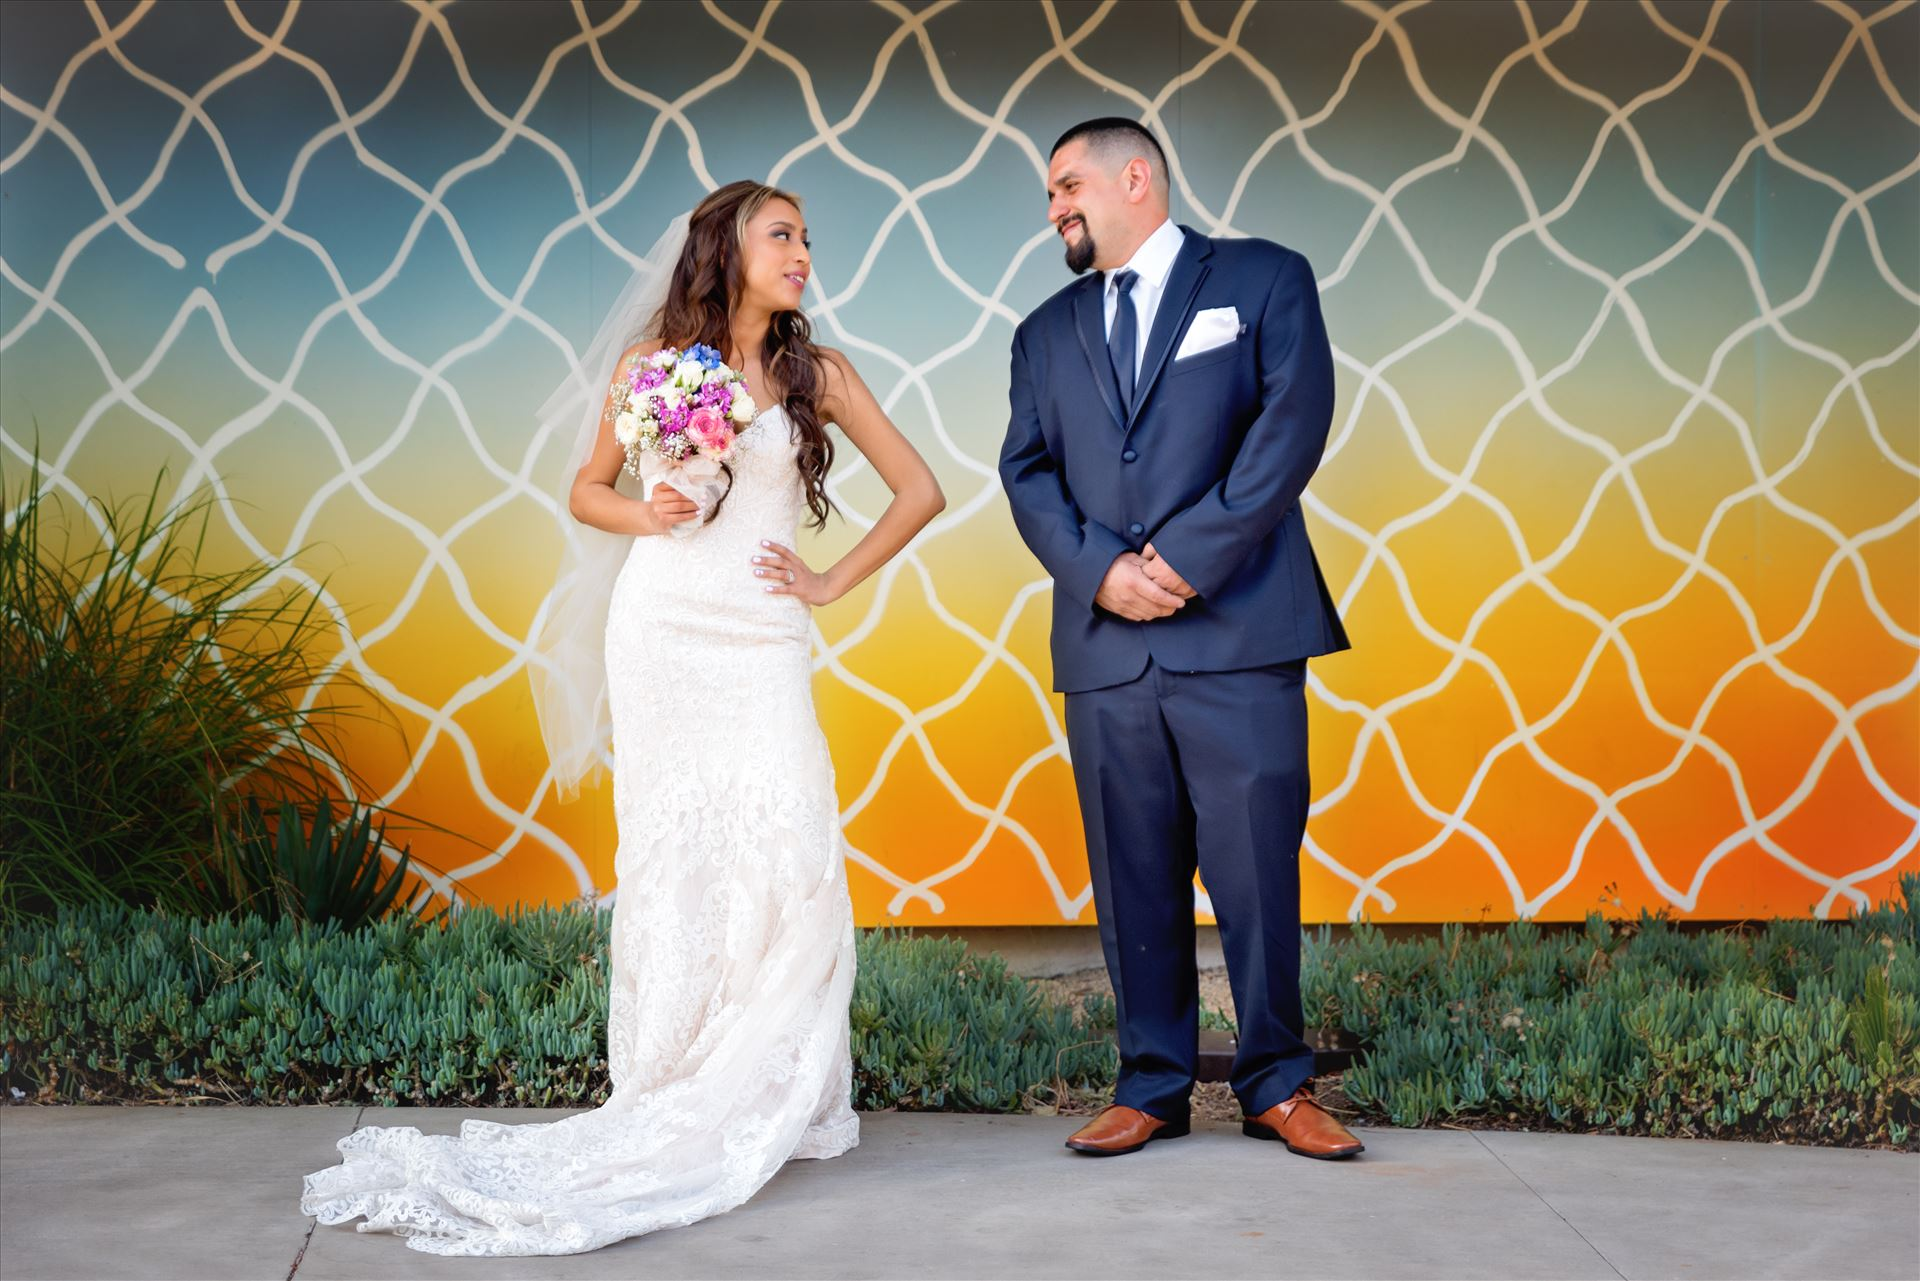 Kimpton Goodland Hotel Santa Barbara Goleta California Bride and Groom at Art Wall -  by Sarah Williams